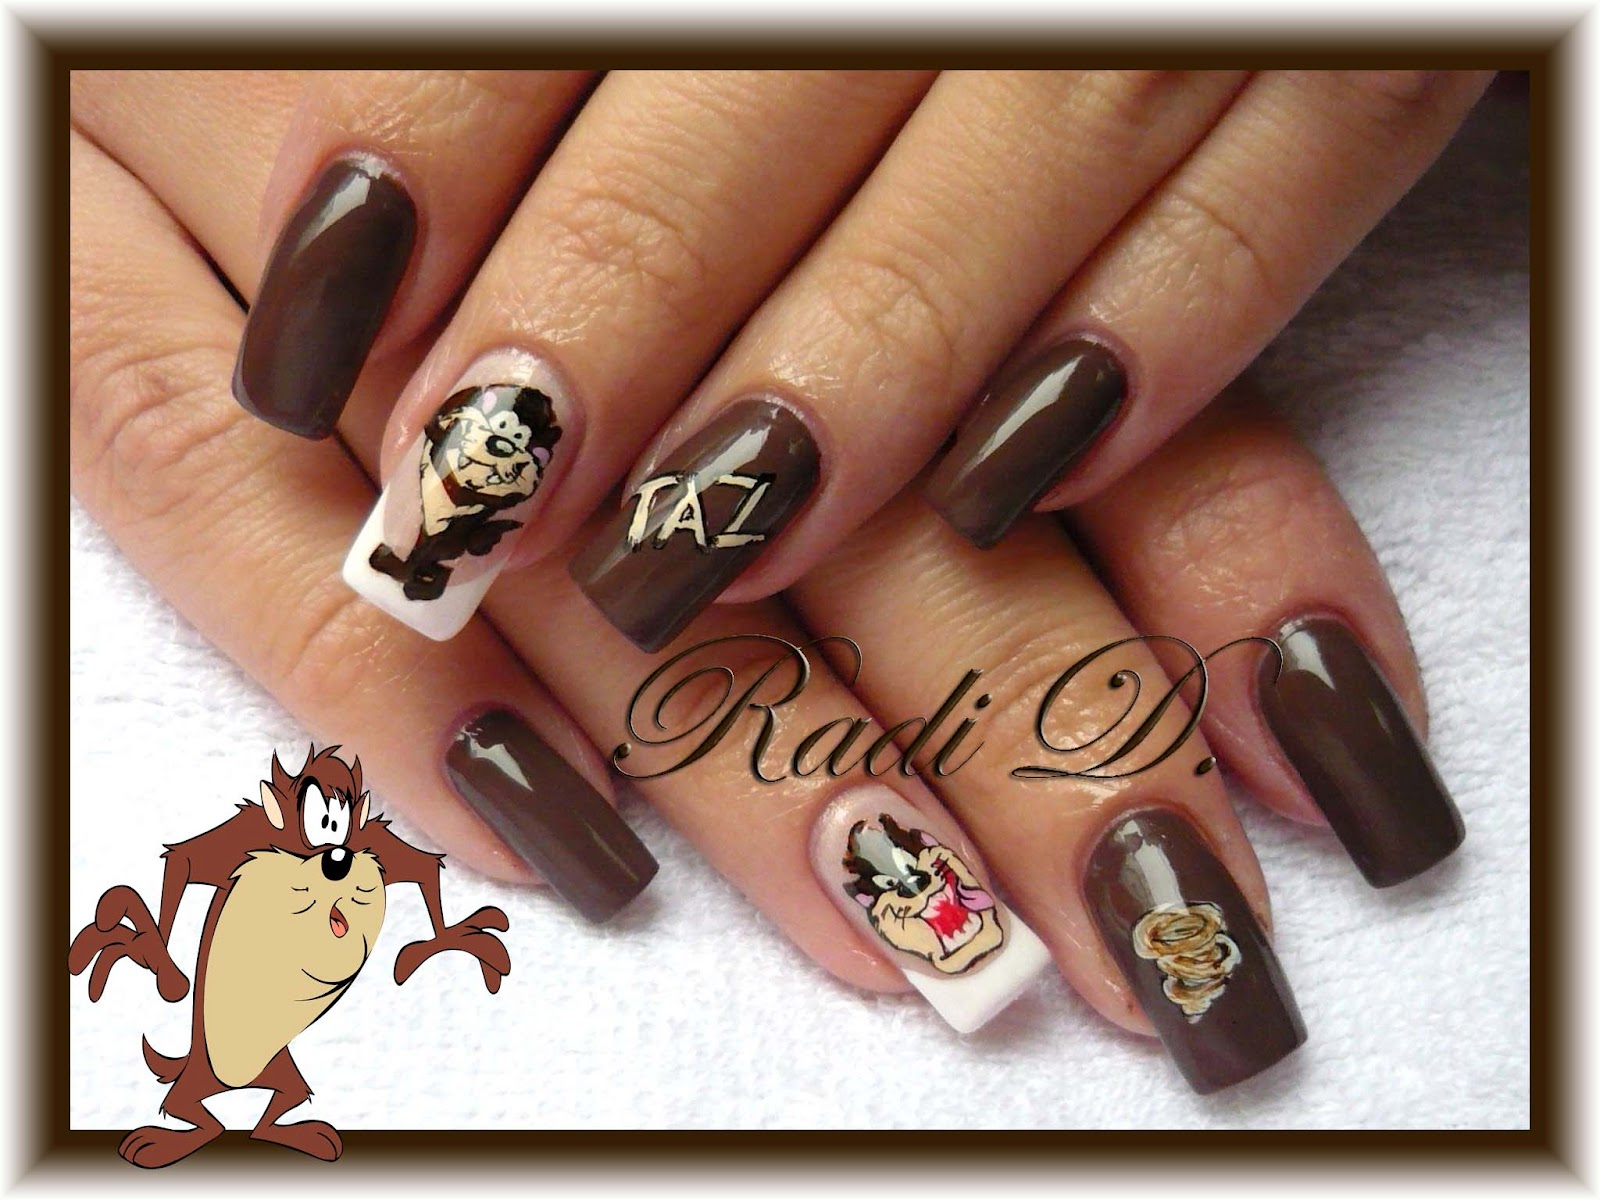 It`s all about nails: Taz nails